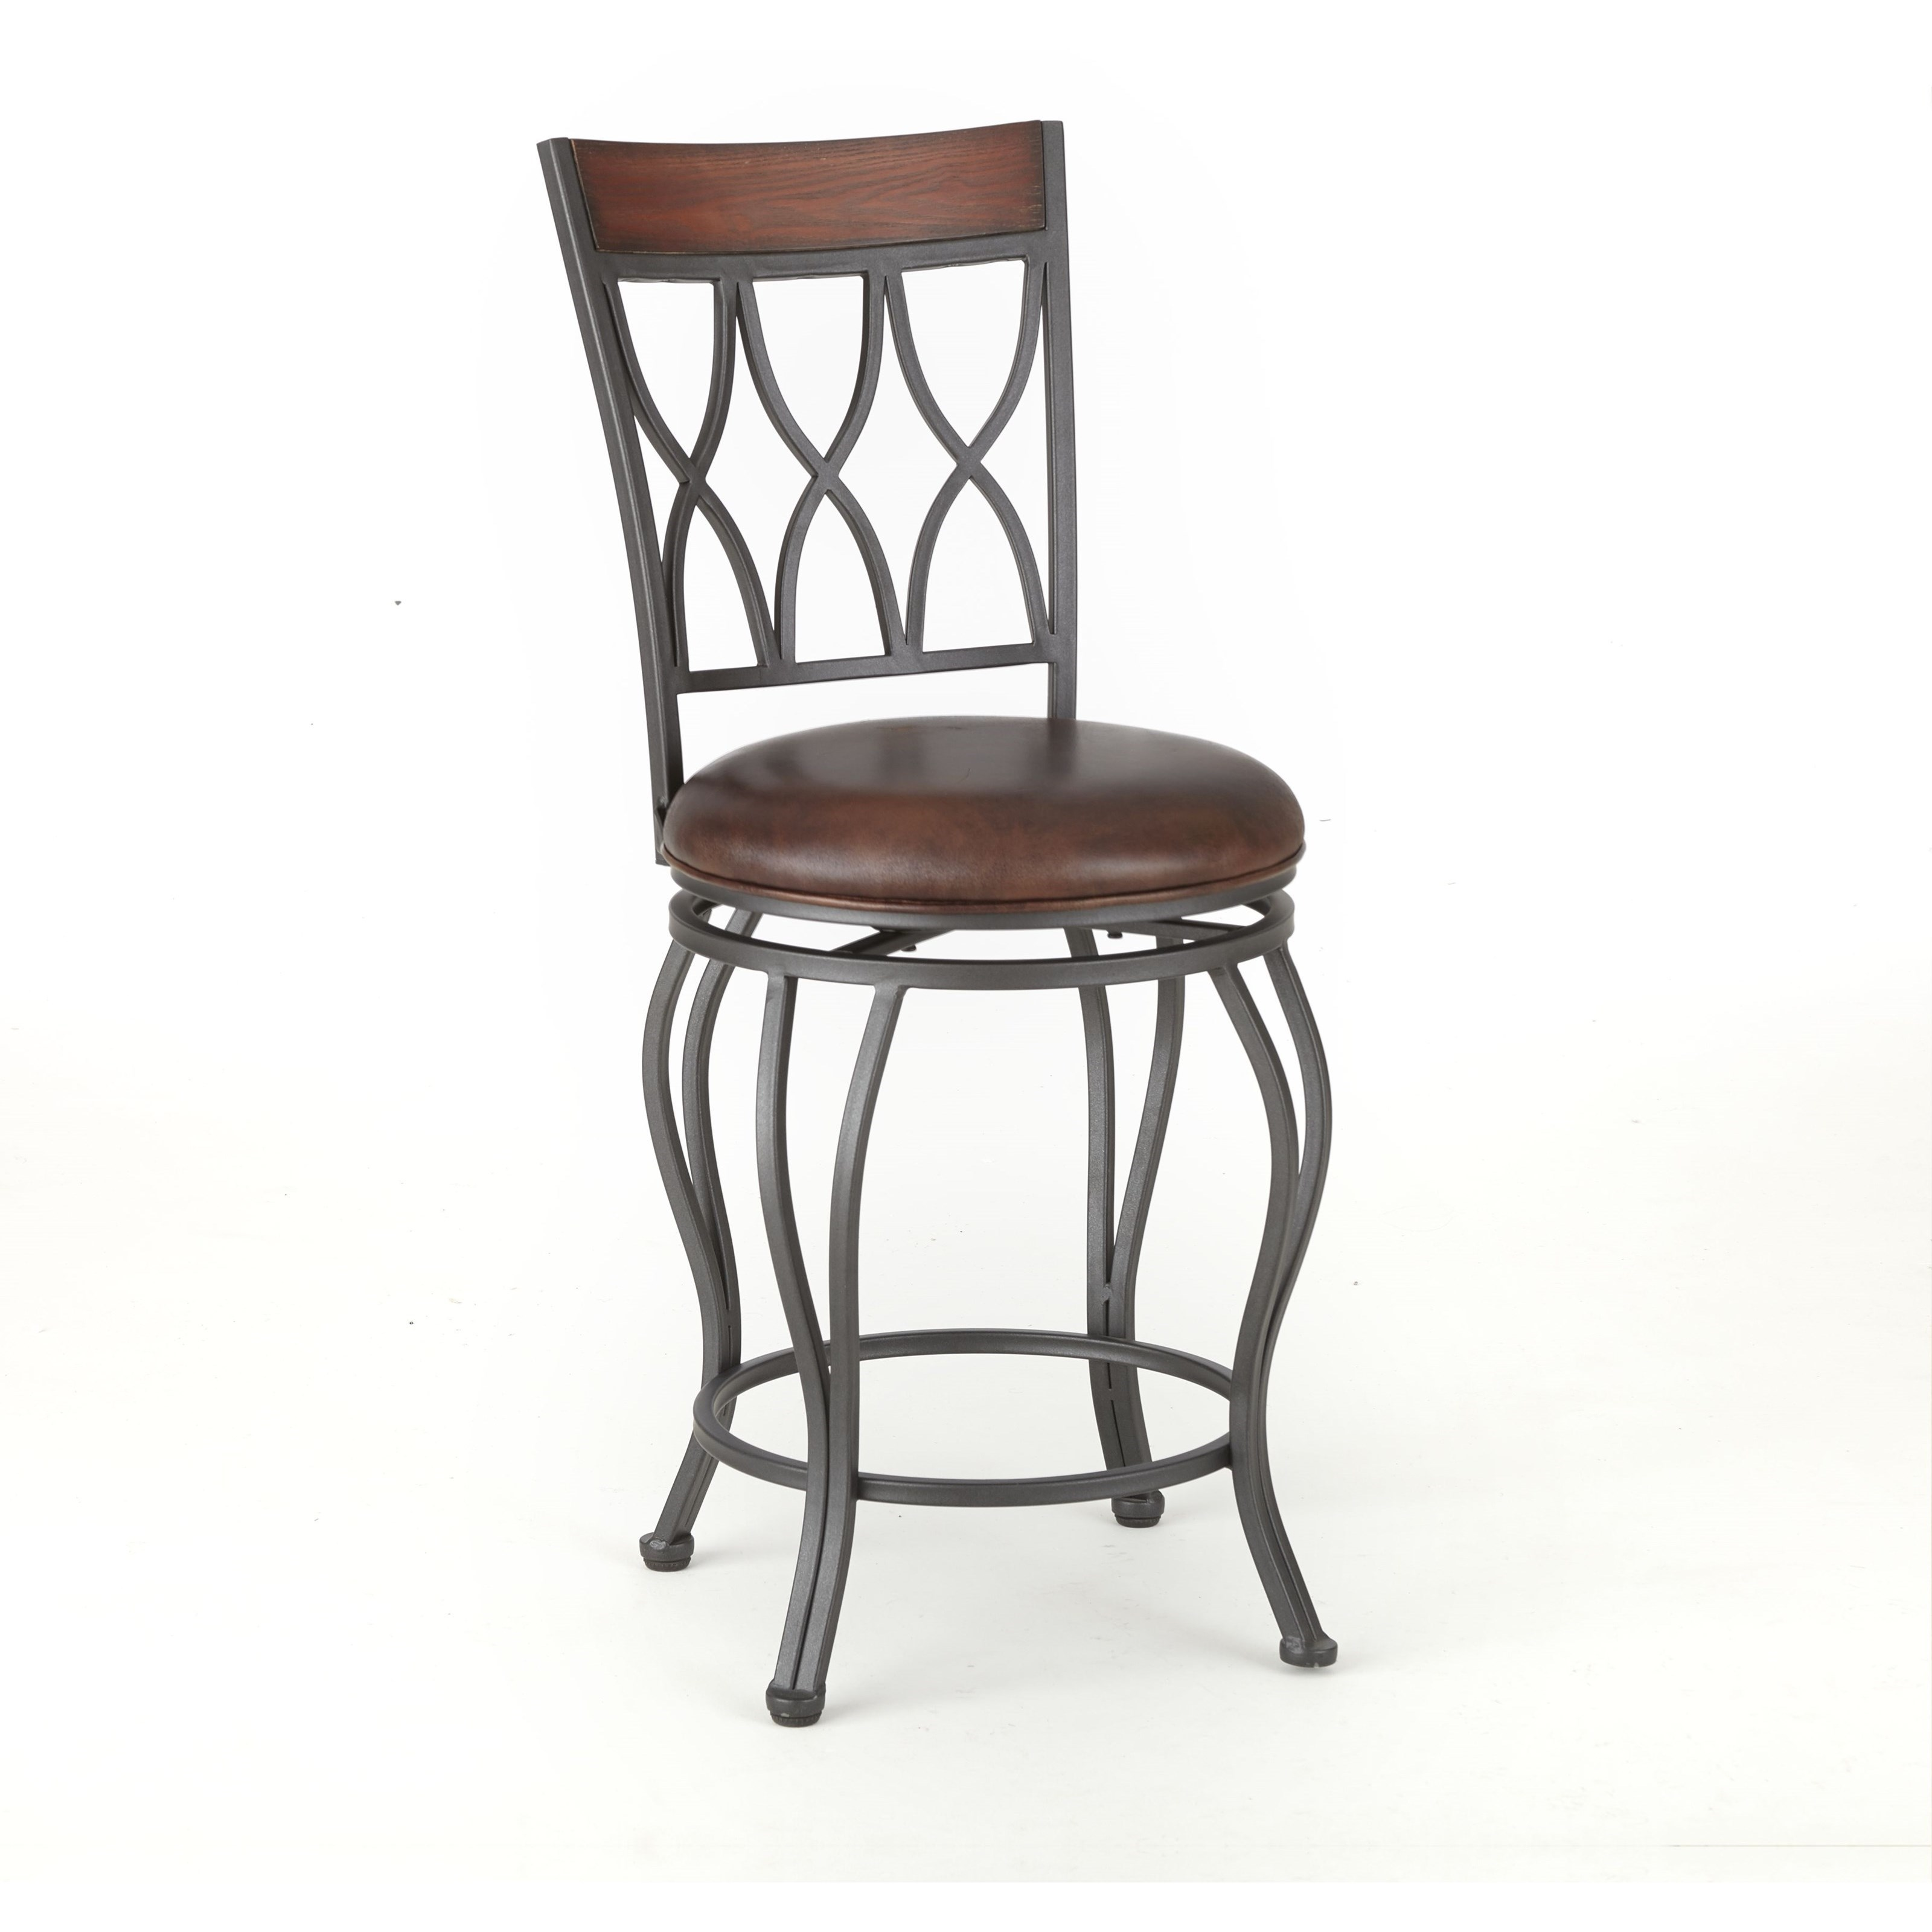 Wallen Swivel Counter Height Barstool by Steve Silver at Walker's Furniture